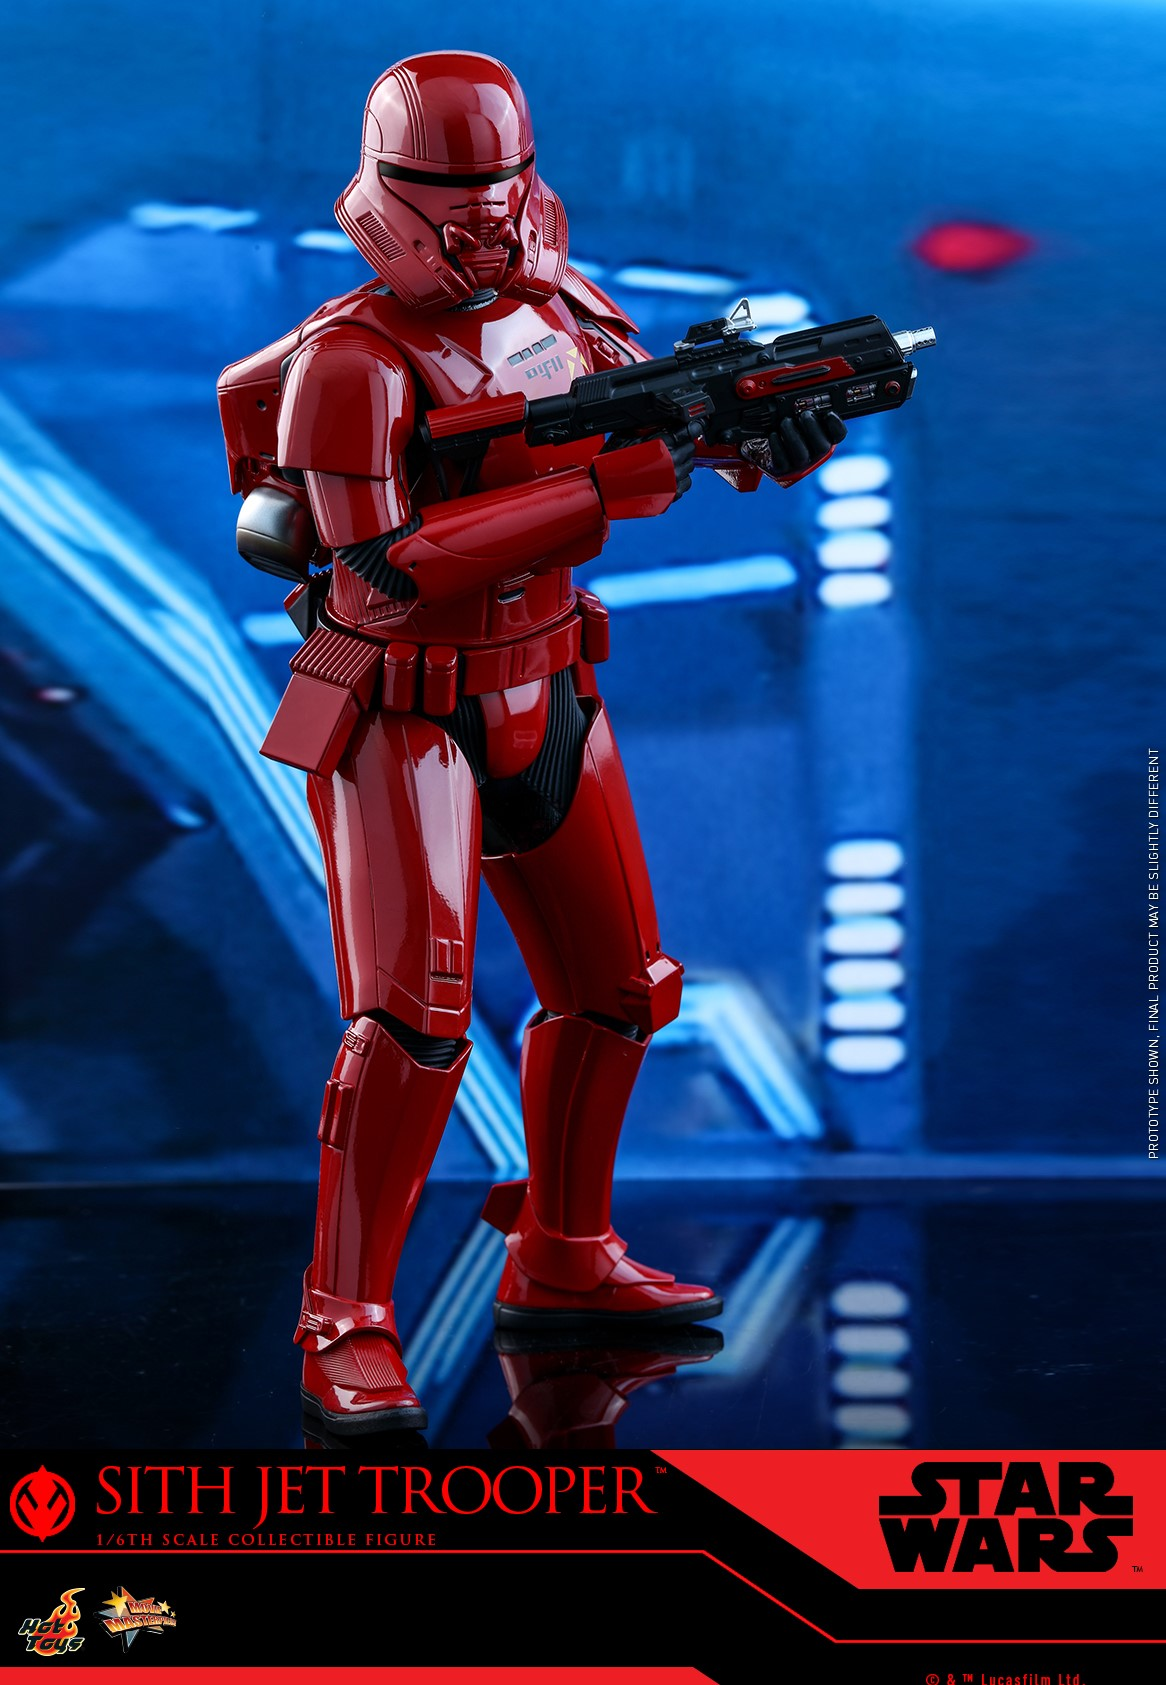 Pre-Order Hot Toys Star Wars Sith Jet Trooper 1:6th Figure